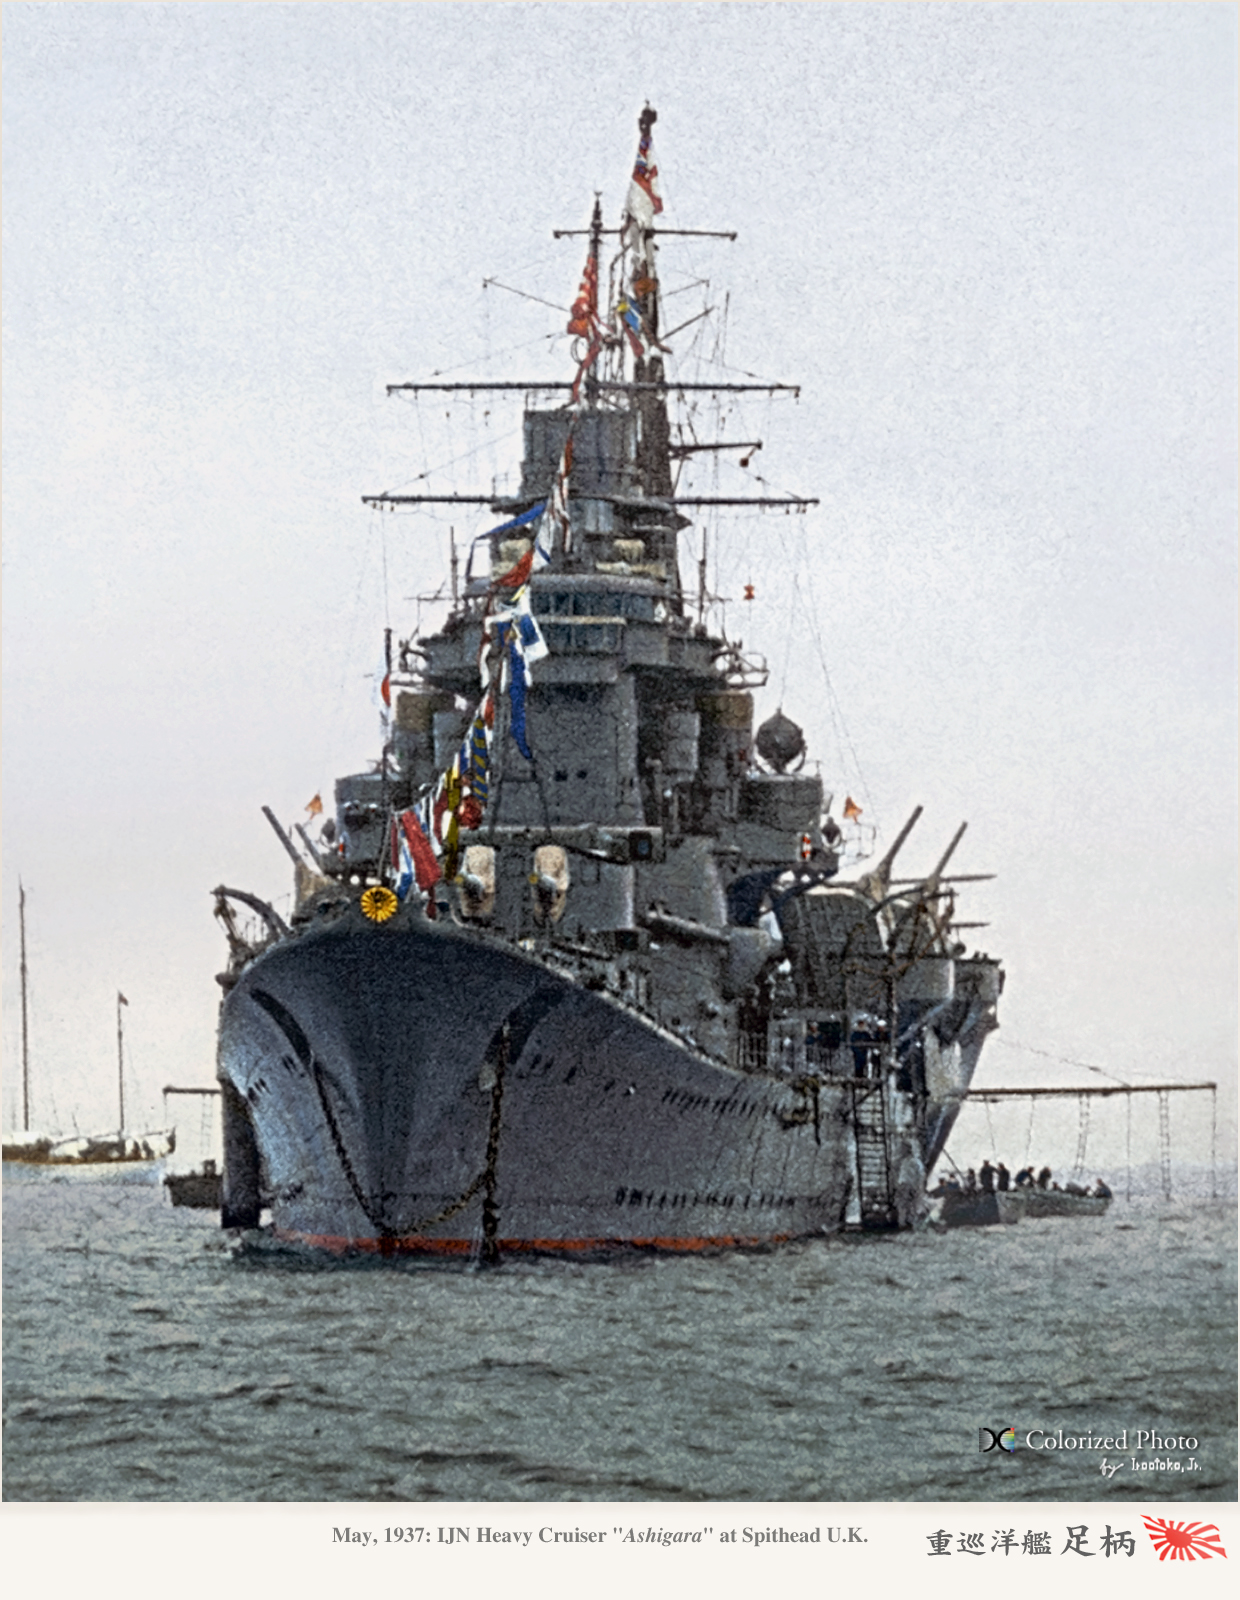 IJN Ashigara at the Spithead coronation naval review in 1937